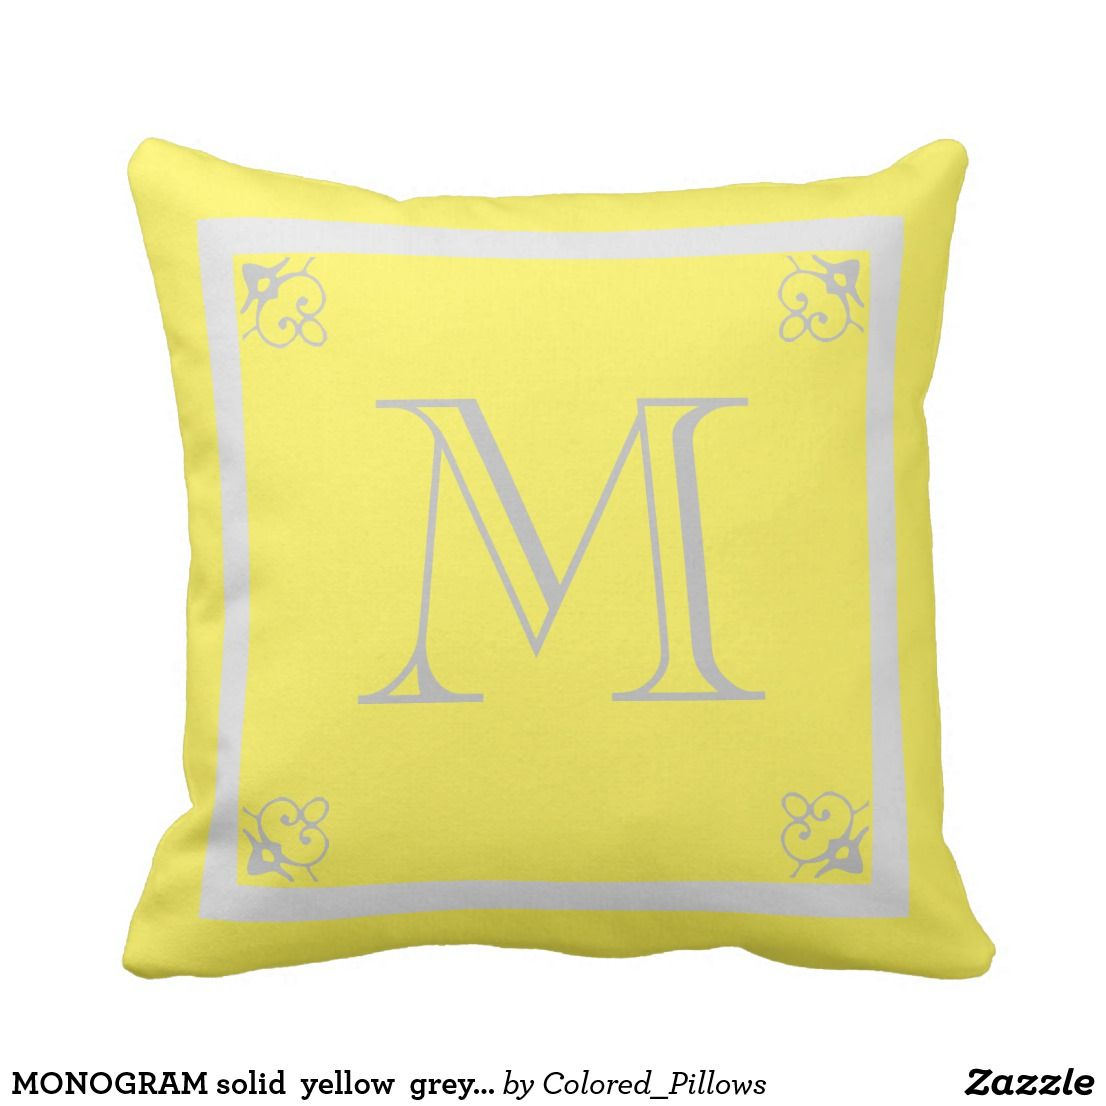 Monogram Solid Yellow Grey Custom Decorative Throw Pillow Pillows Decorative Throw Pillows Modern Pillows